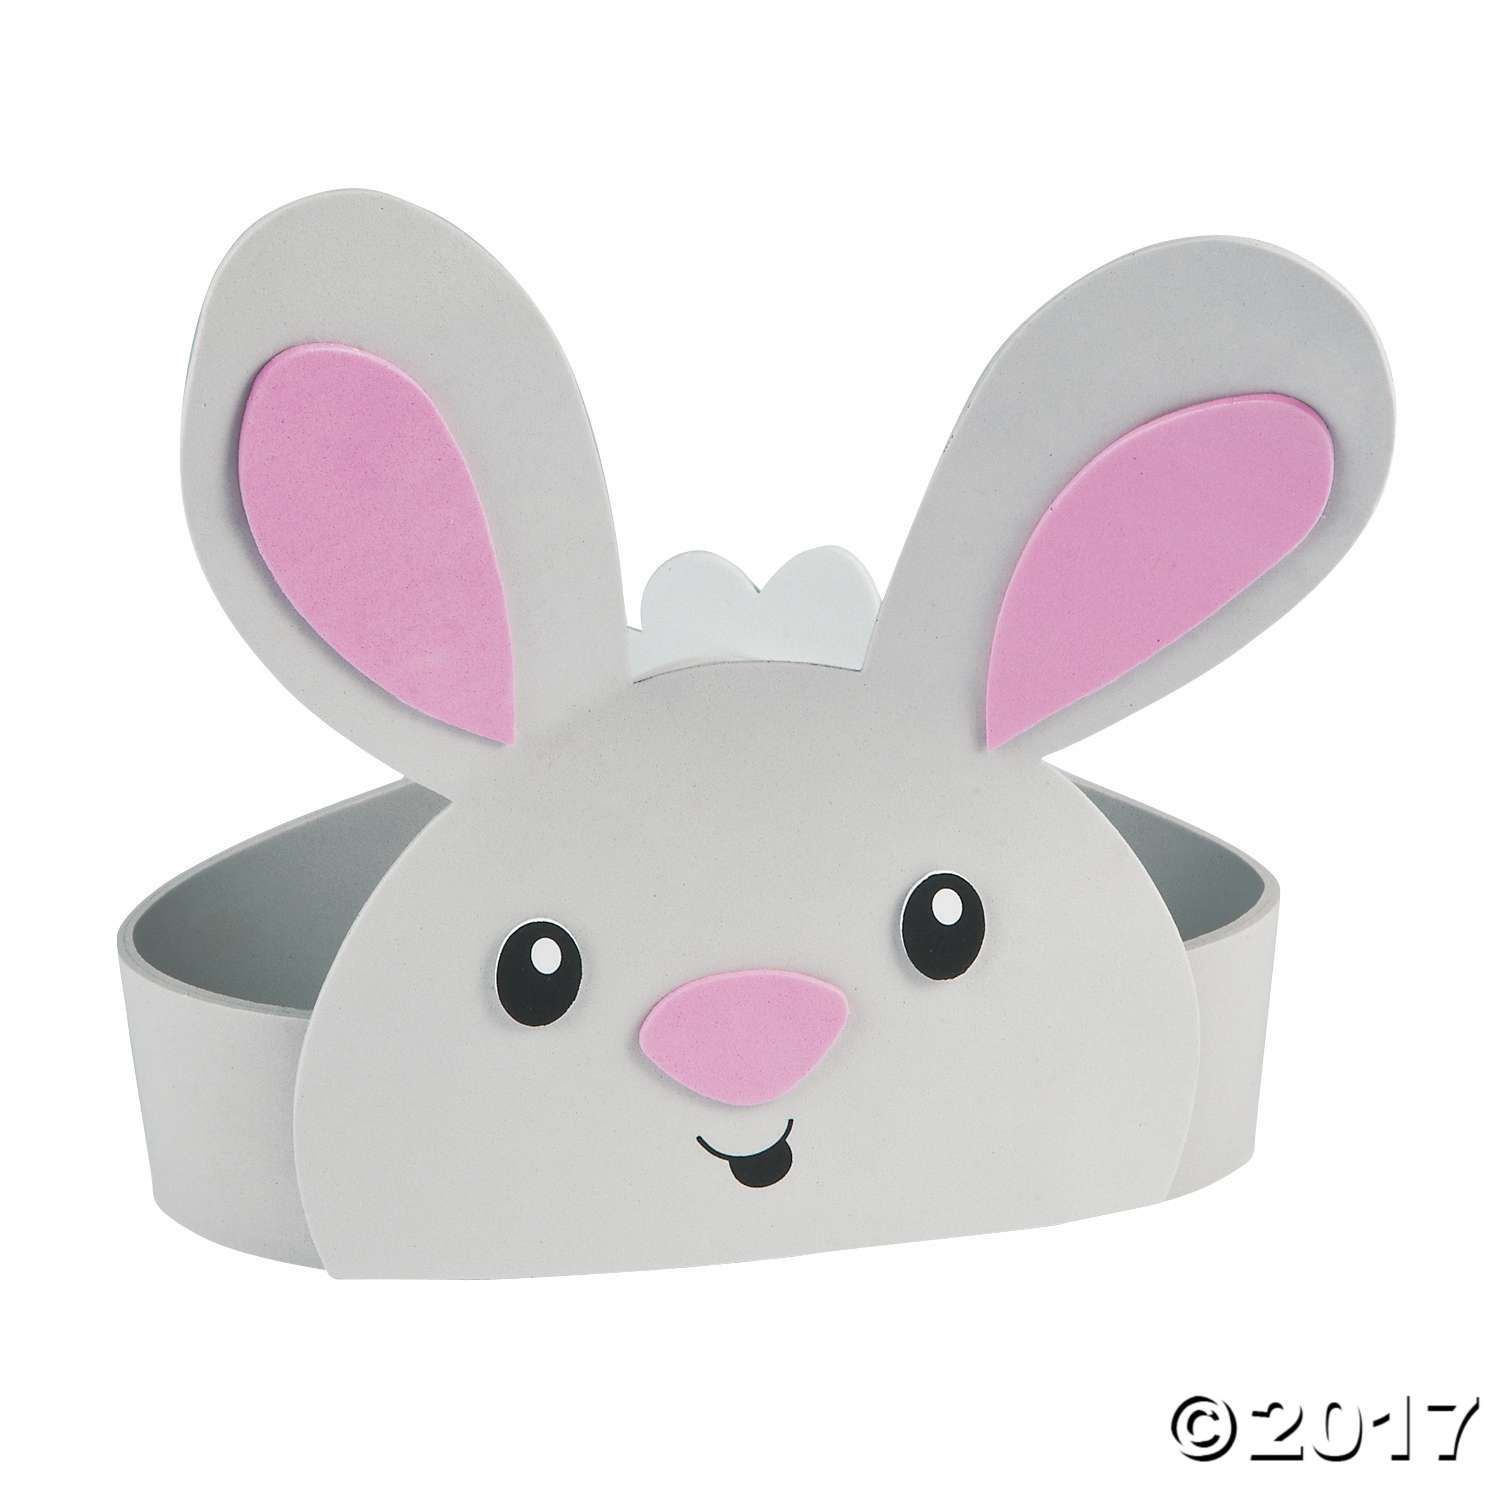 Mouse Paper Crown - Printable | Crown, Mice and Printed materials